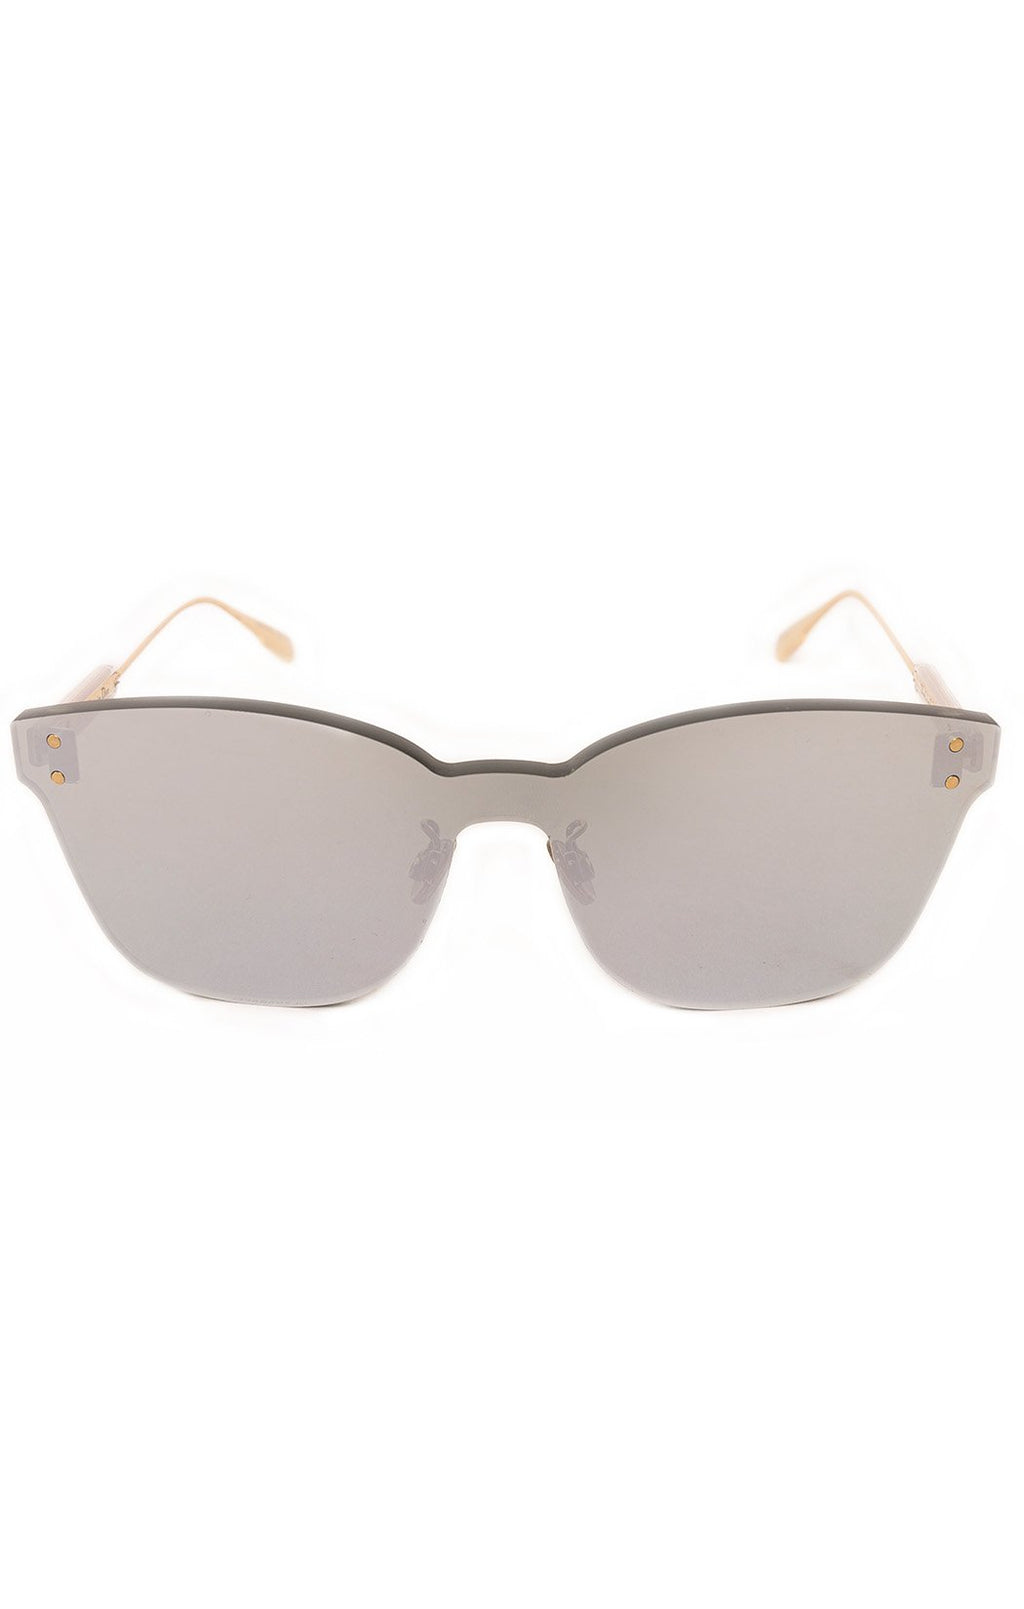 "Front view of CHRISTIAN DIOR  Sunglasses  Size: 5.78"" W x 2.25"" H"